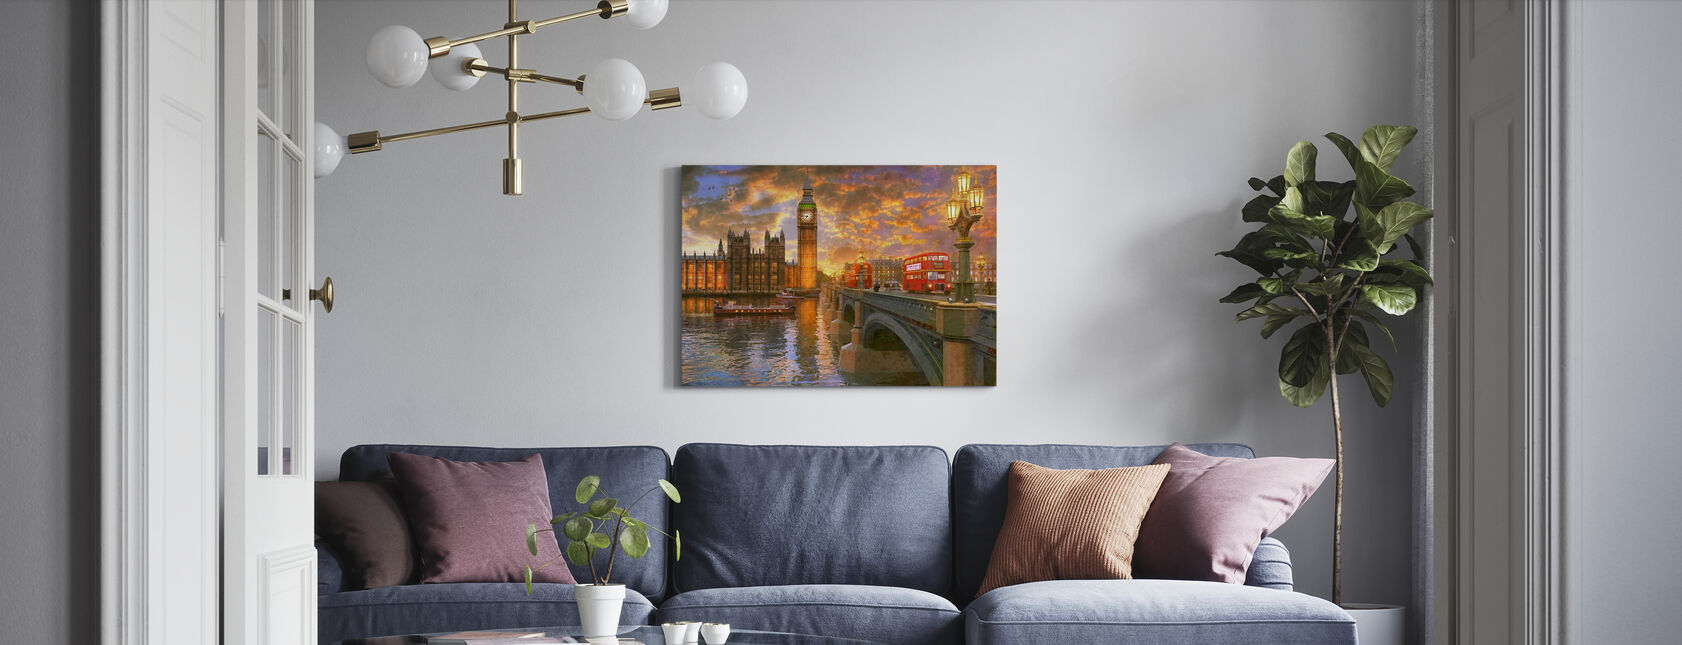 Westminster Sunset - Canvas print - Living Room